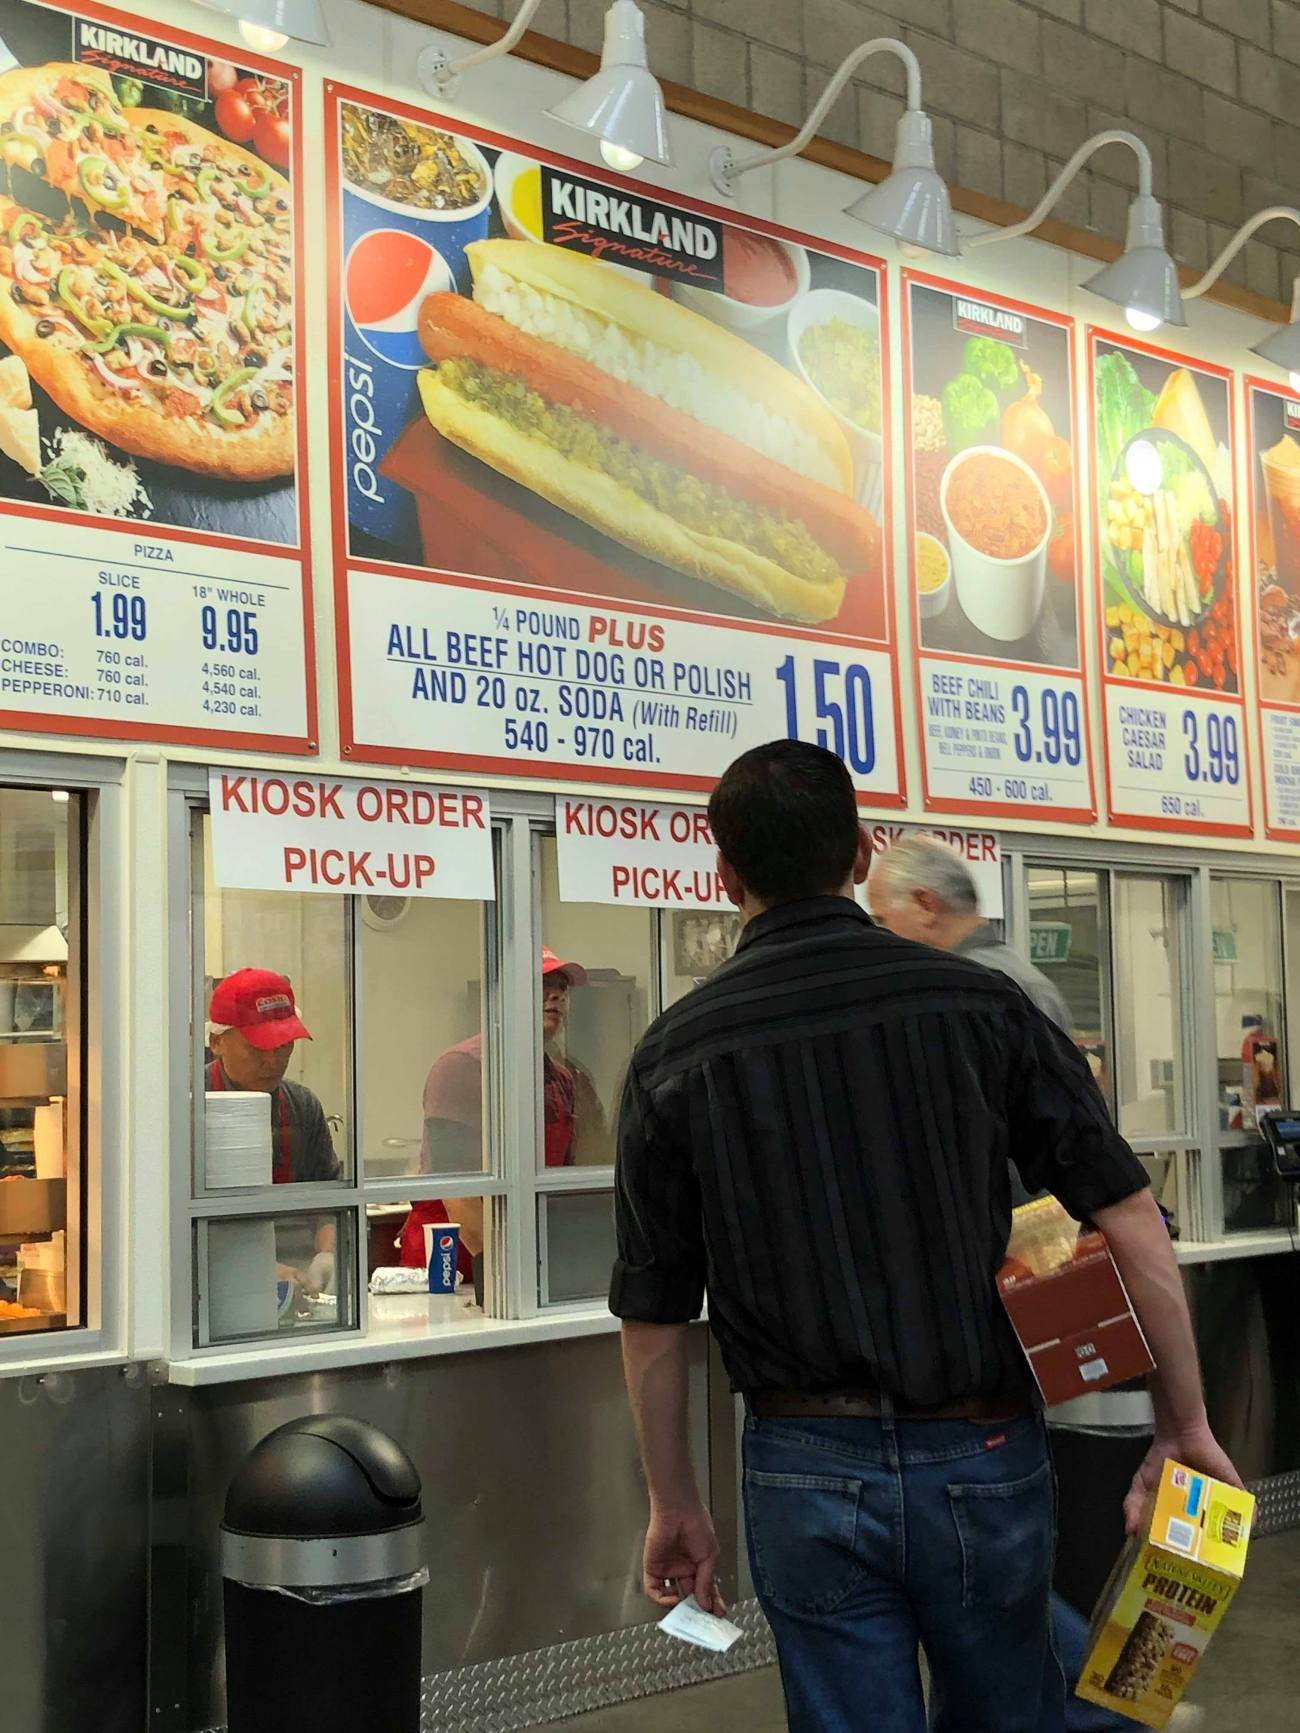 costco-self-serve-kiosks-news-food-court-ocfoodfiend-blogger-tustin-touch-screen-foodie-orange-county-oc-food-fiend.jpg